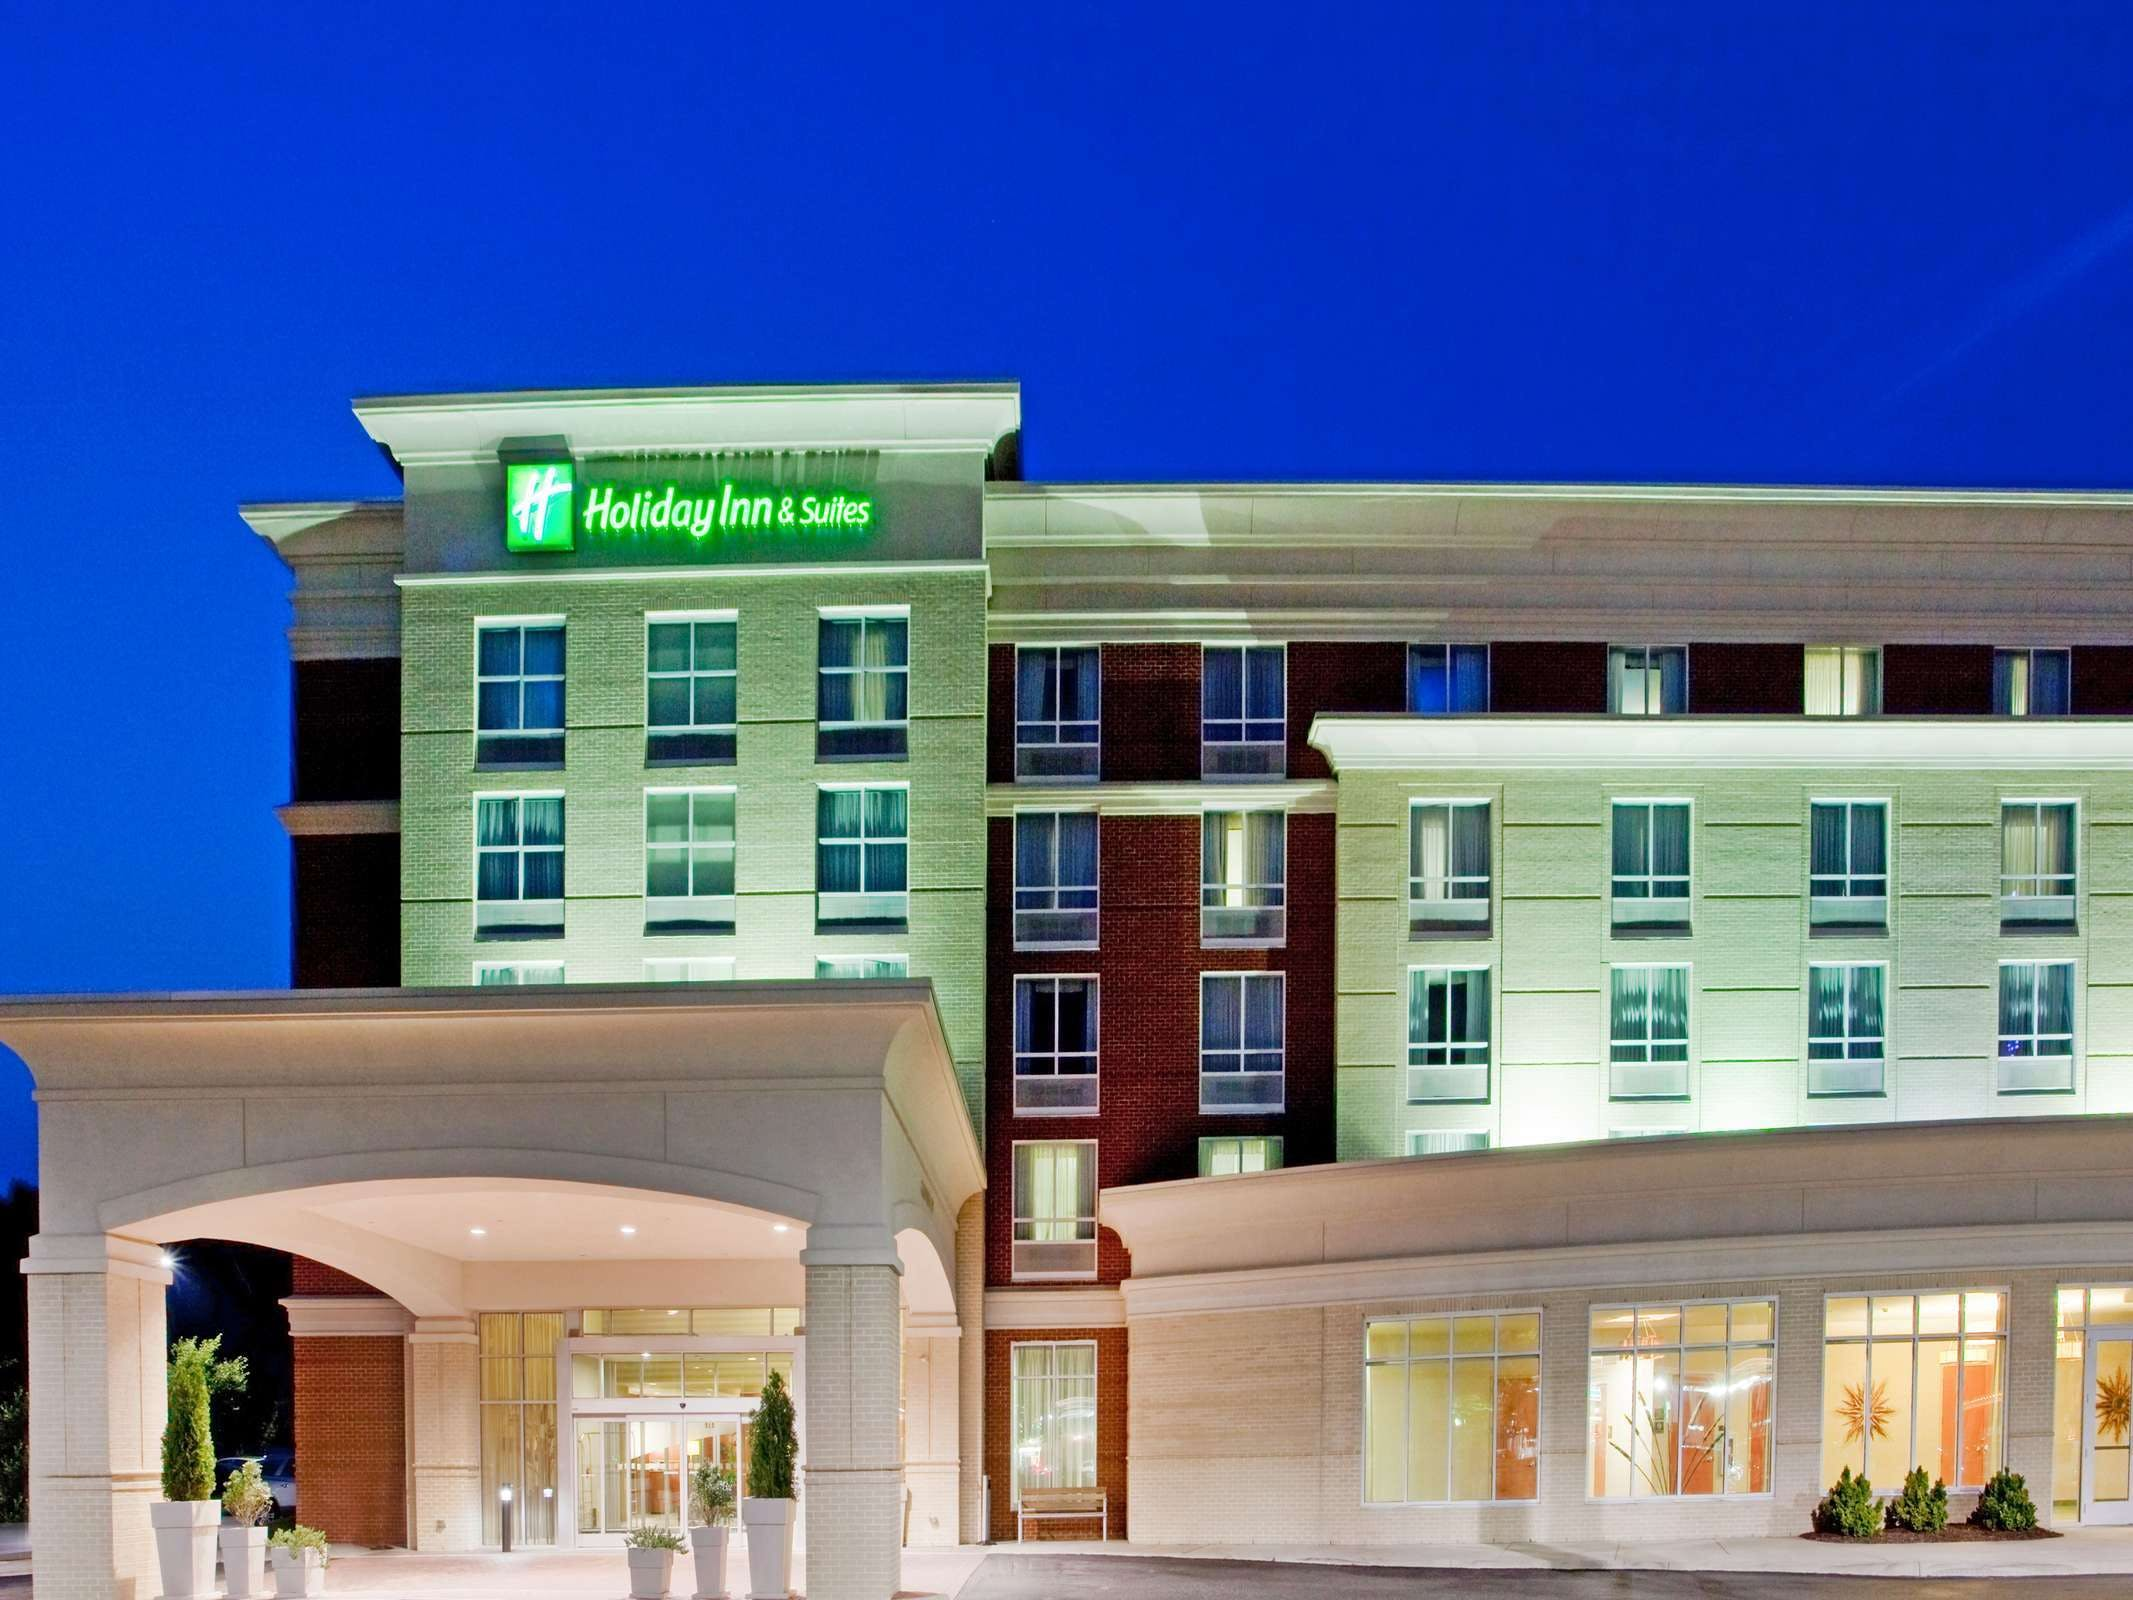 Holiday Inn & Suites Gateway